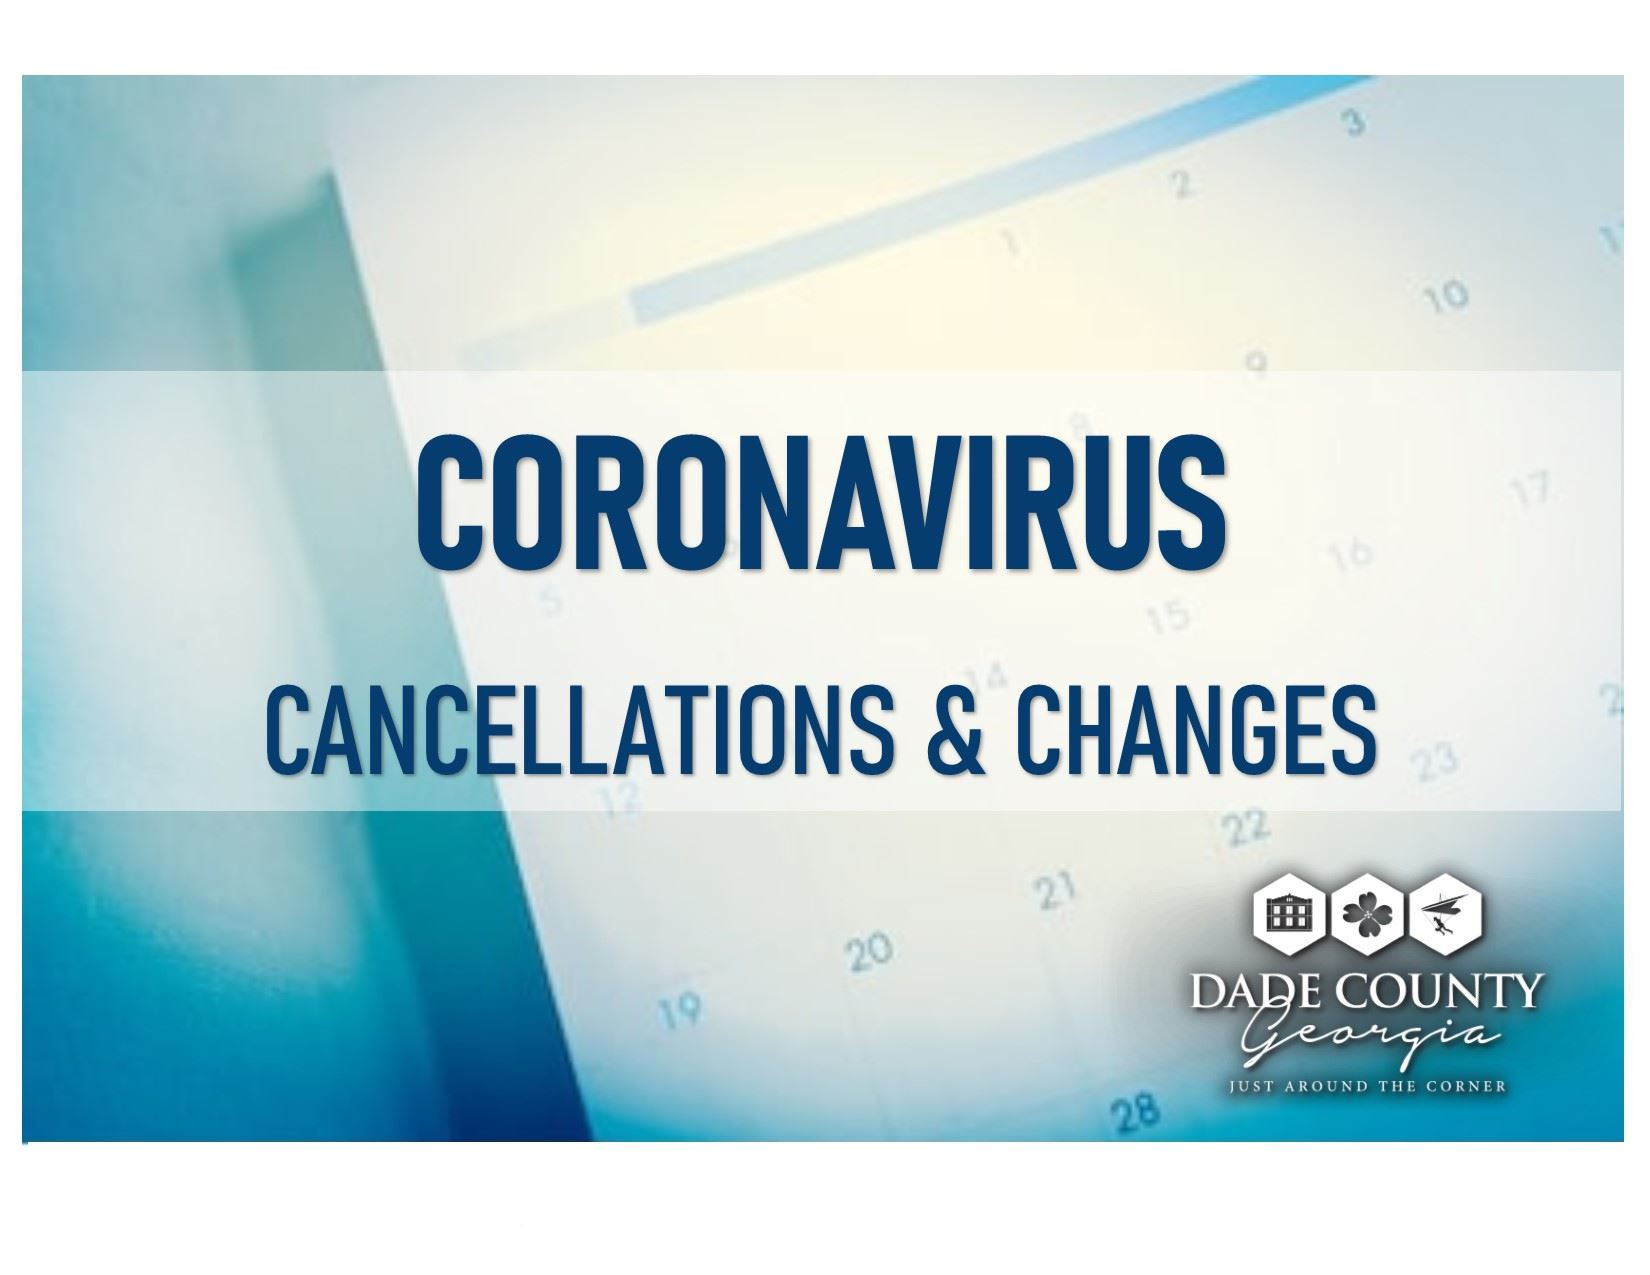 Coronavirus cancellations and changes